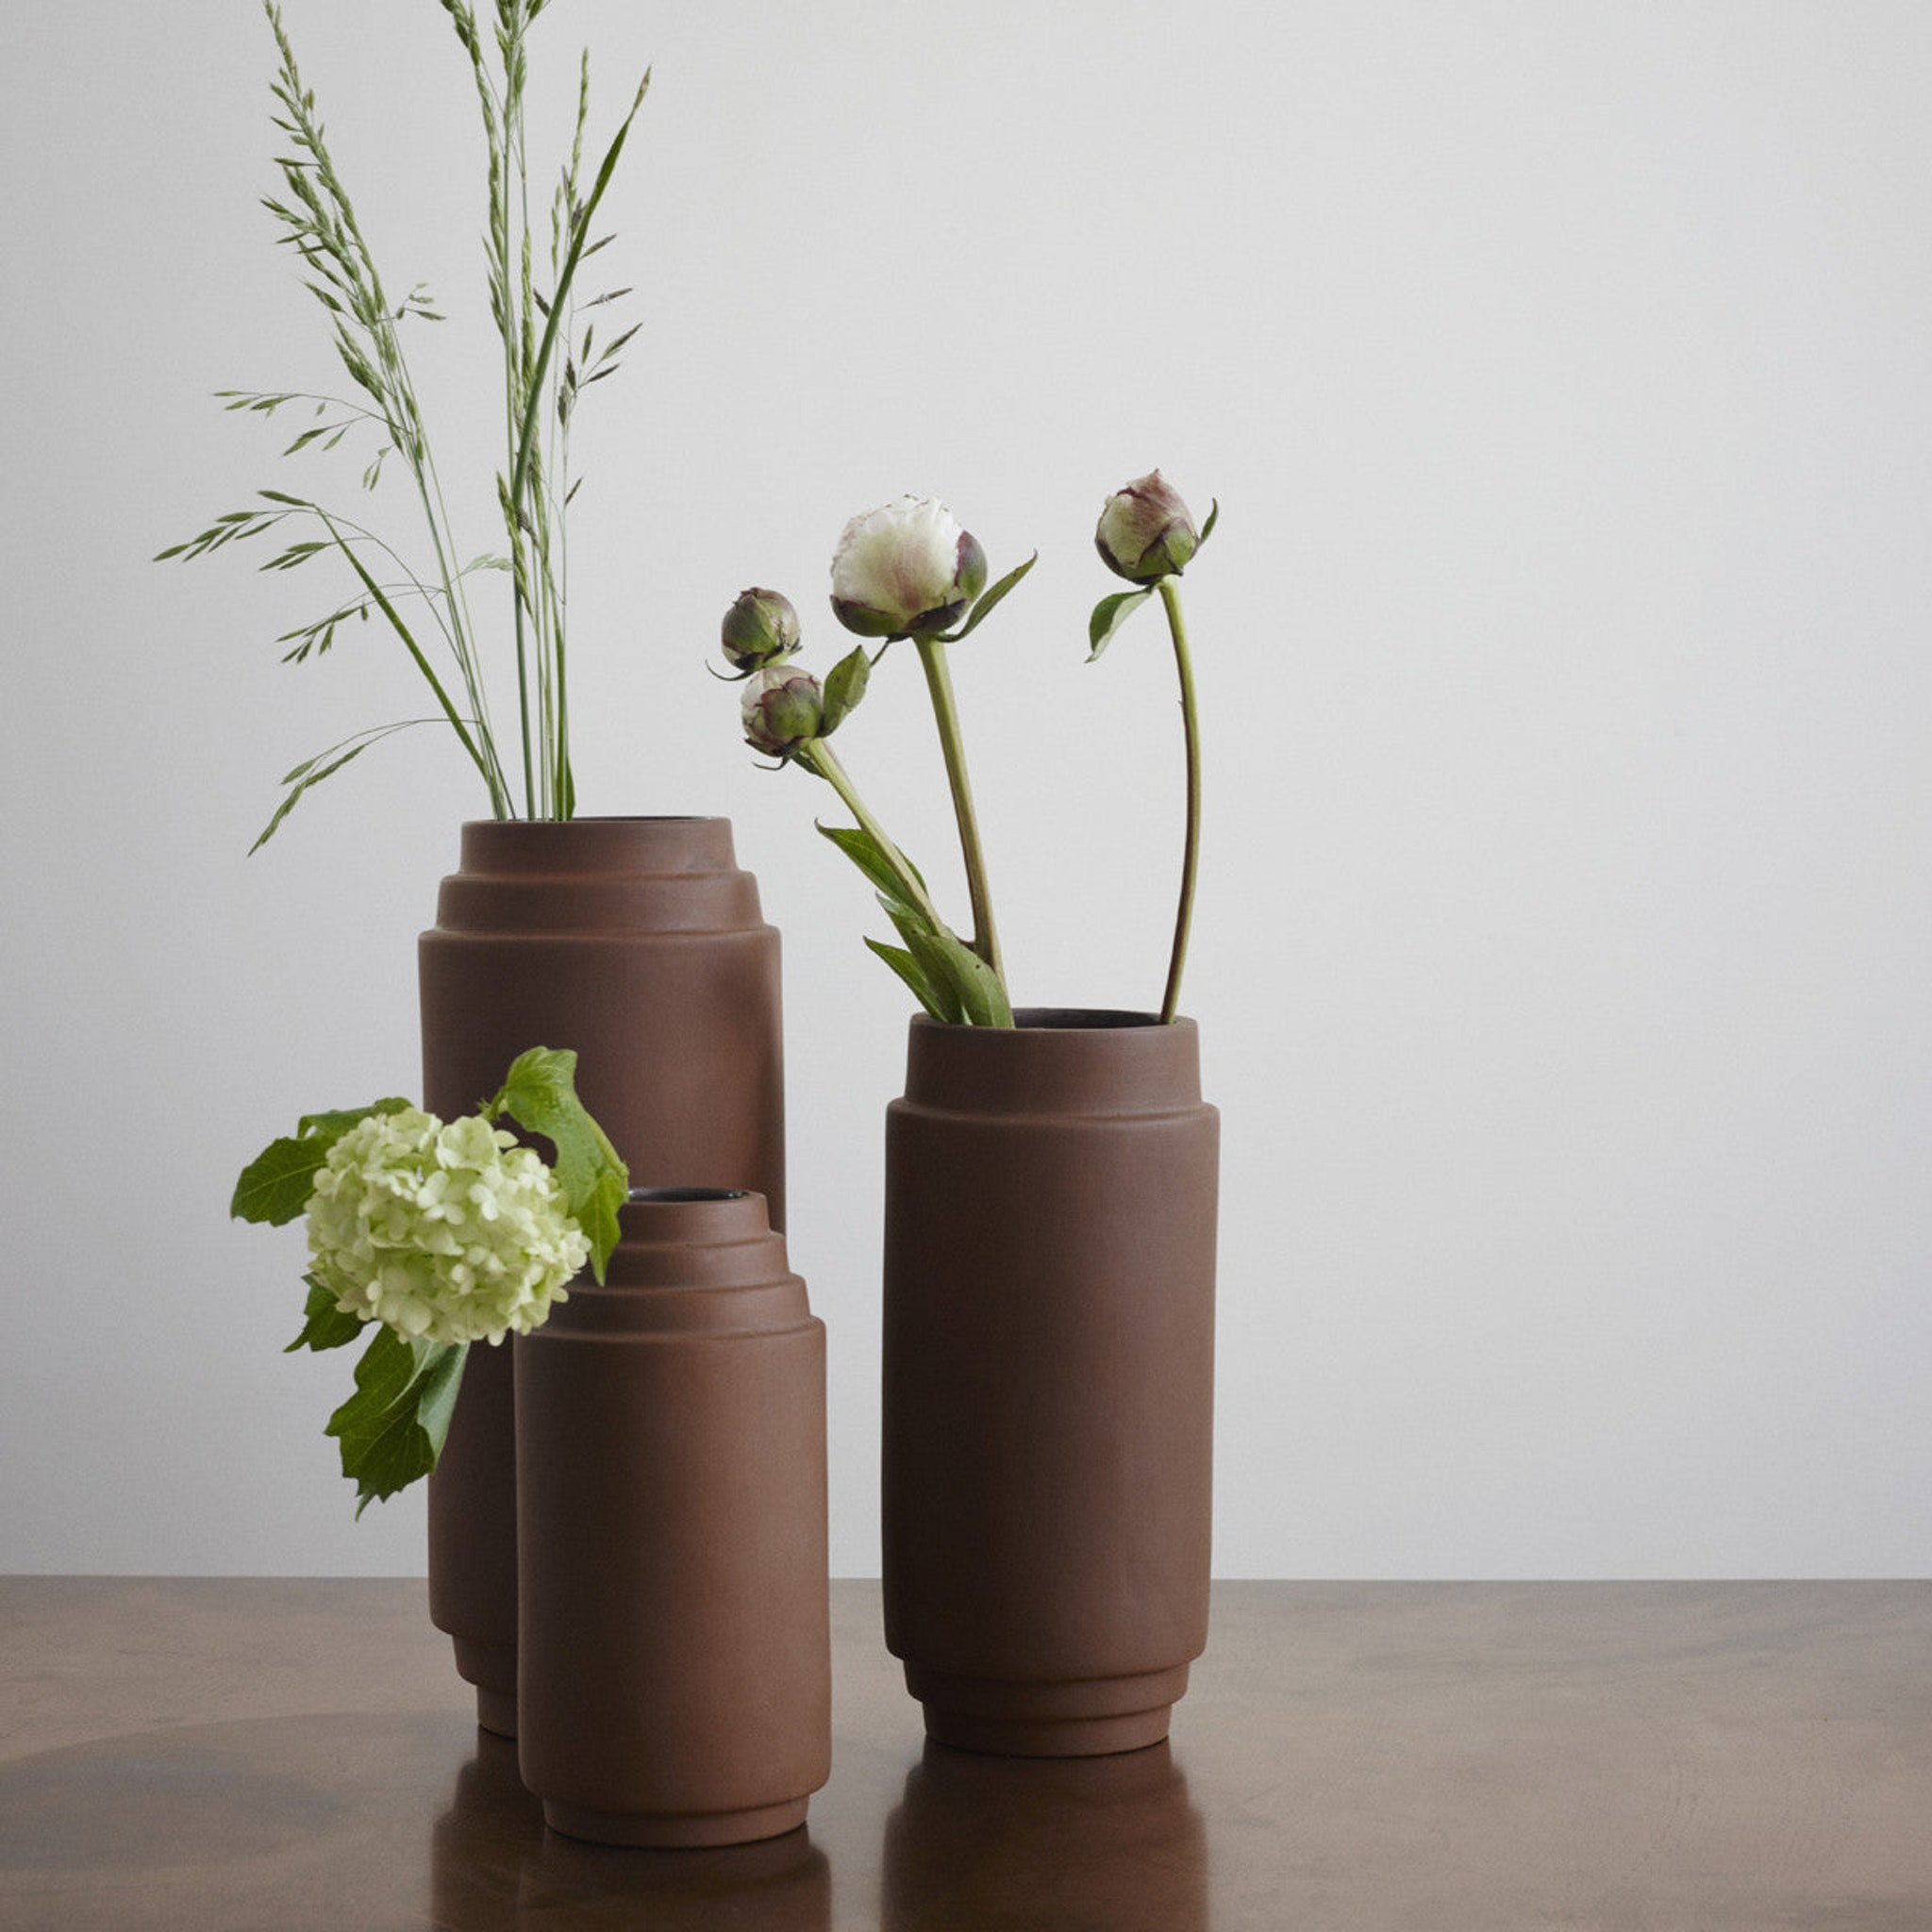 Edge Vase by Stilleben